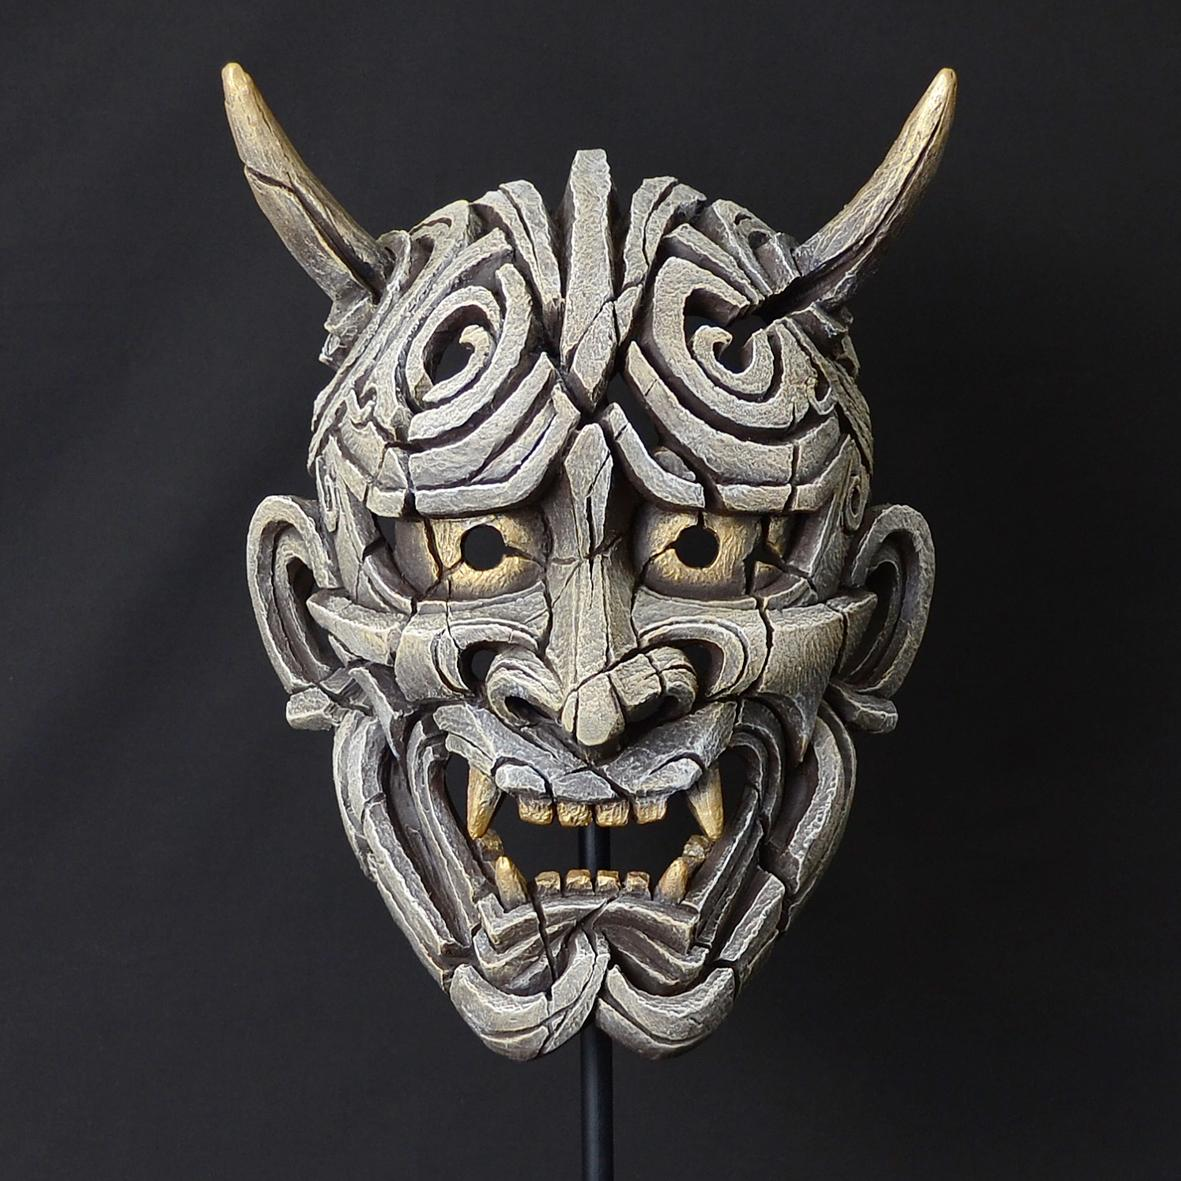 Japanese Hannya Mask - White EDM01W EDGE by Matt Buckley